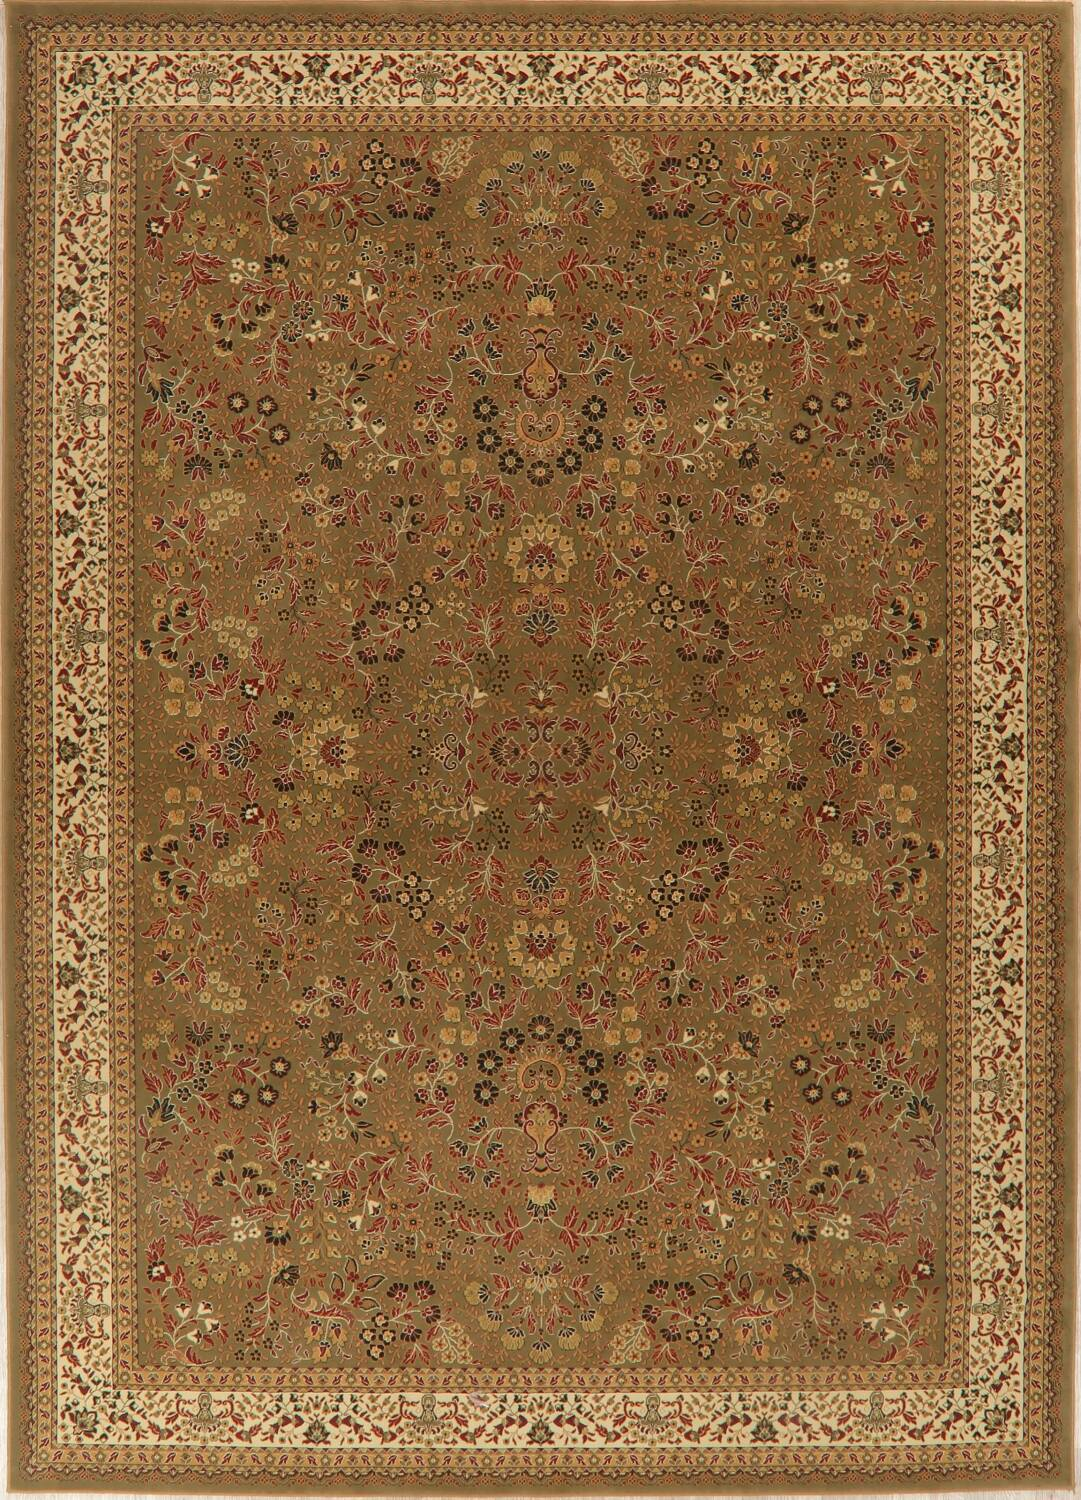 All-Over Floral Agra Turkish Area Rugs image 3